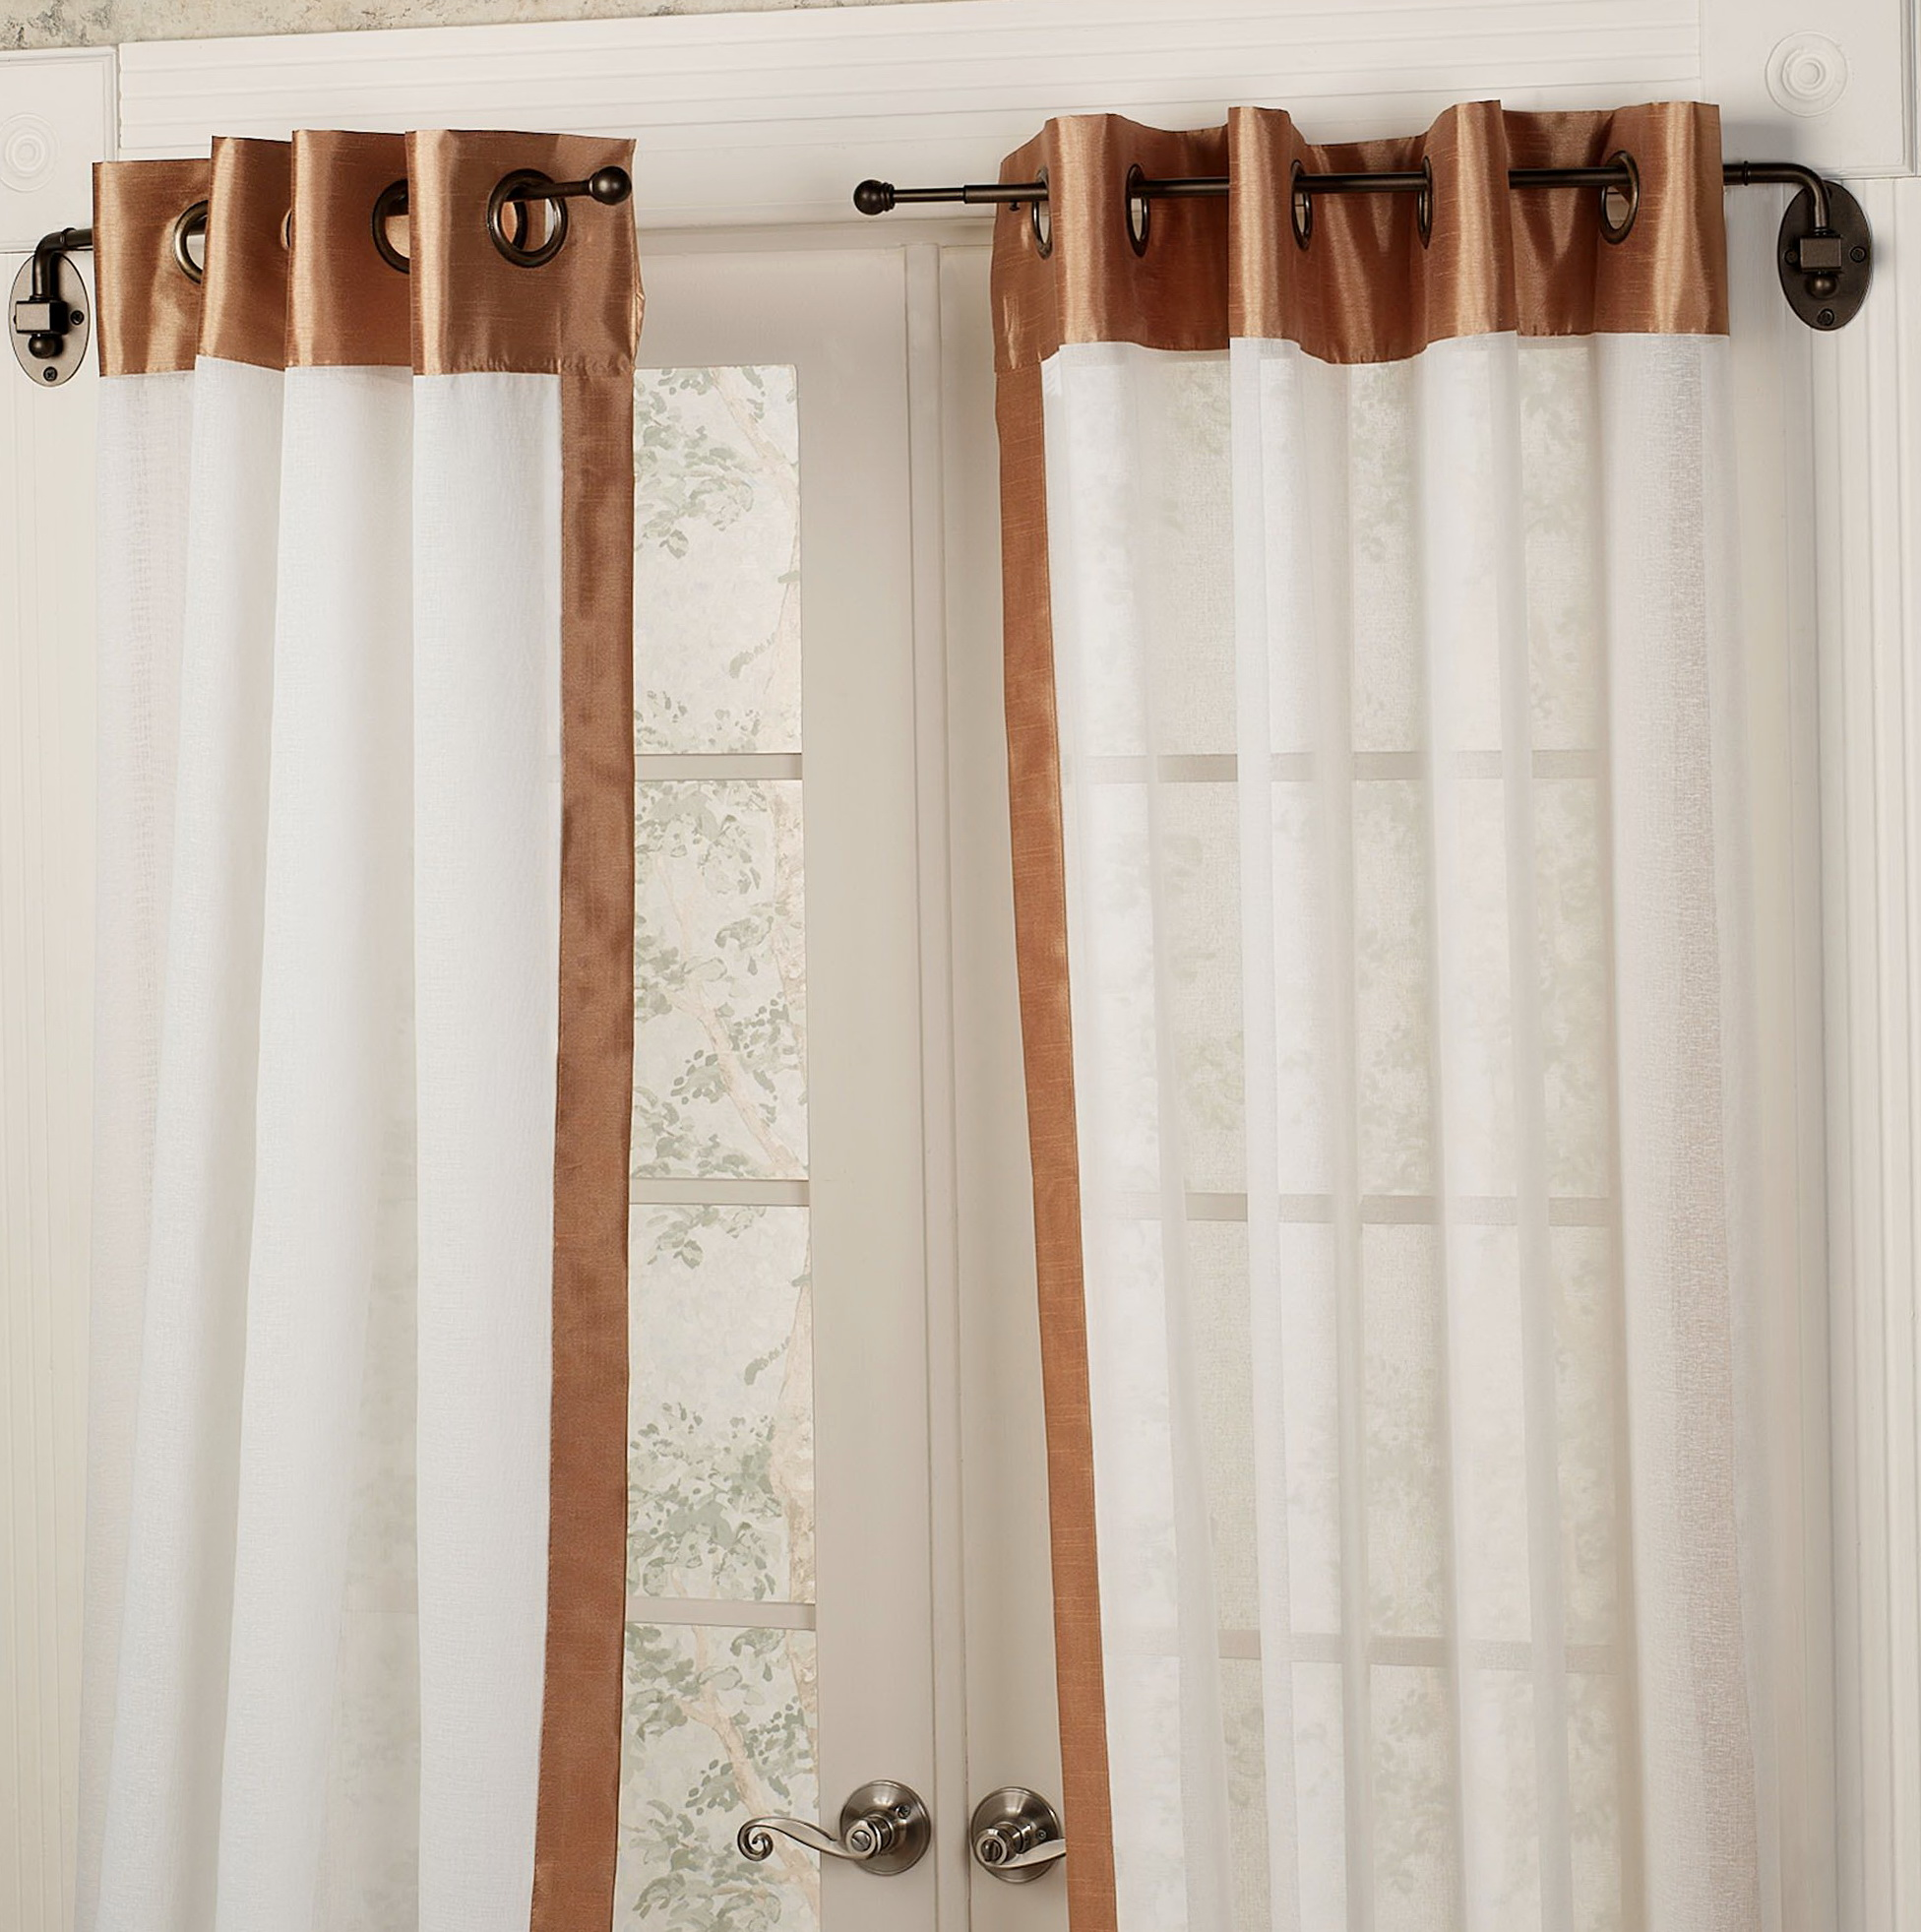 Inside Mount Curtain Rod Lowes Home Design Ideas